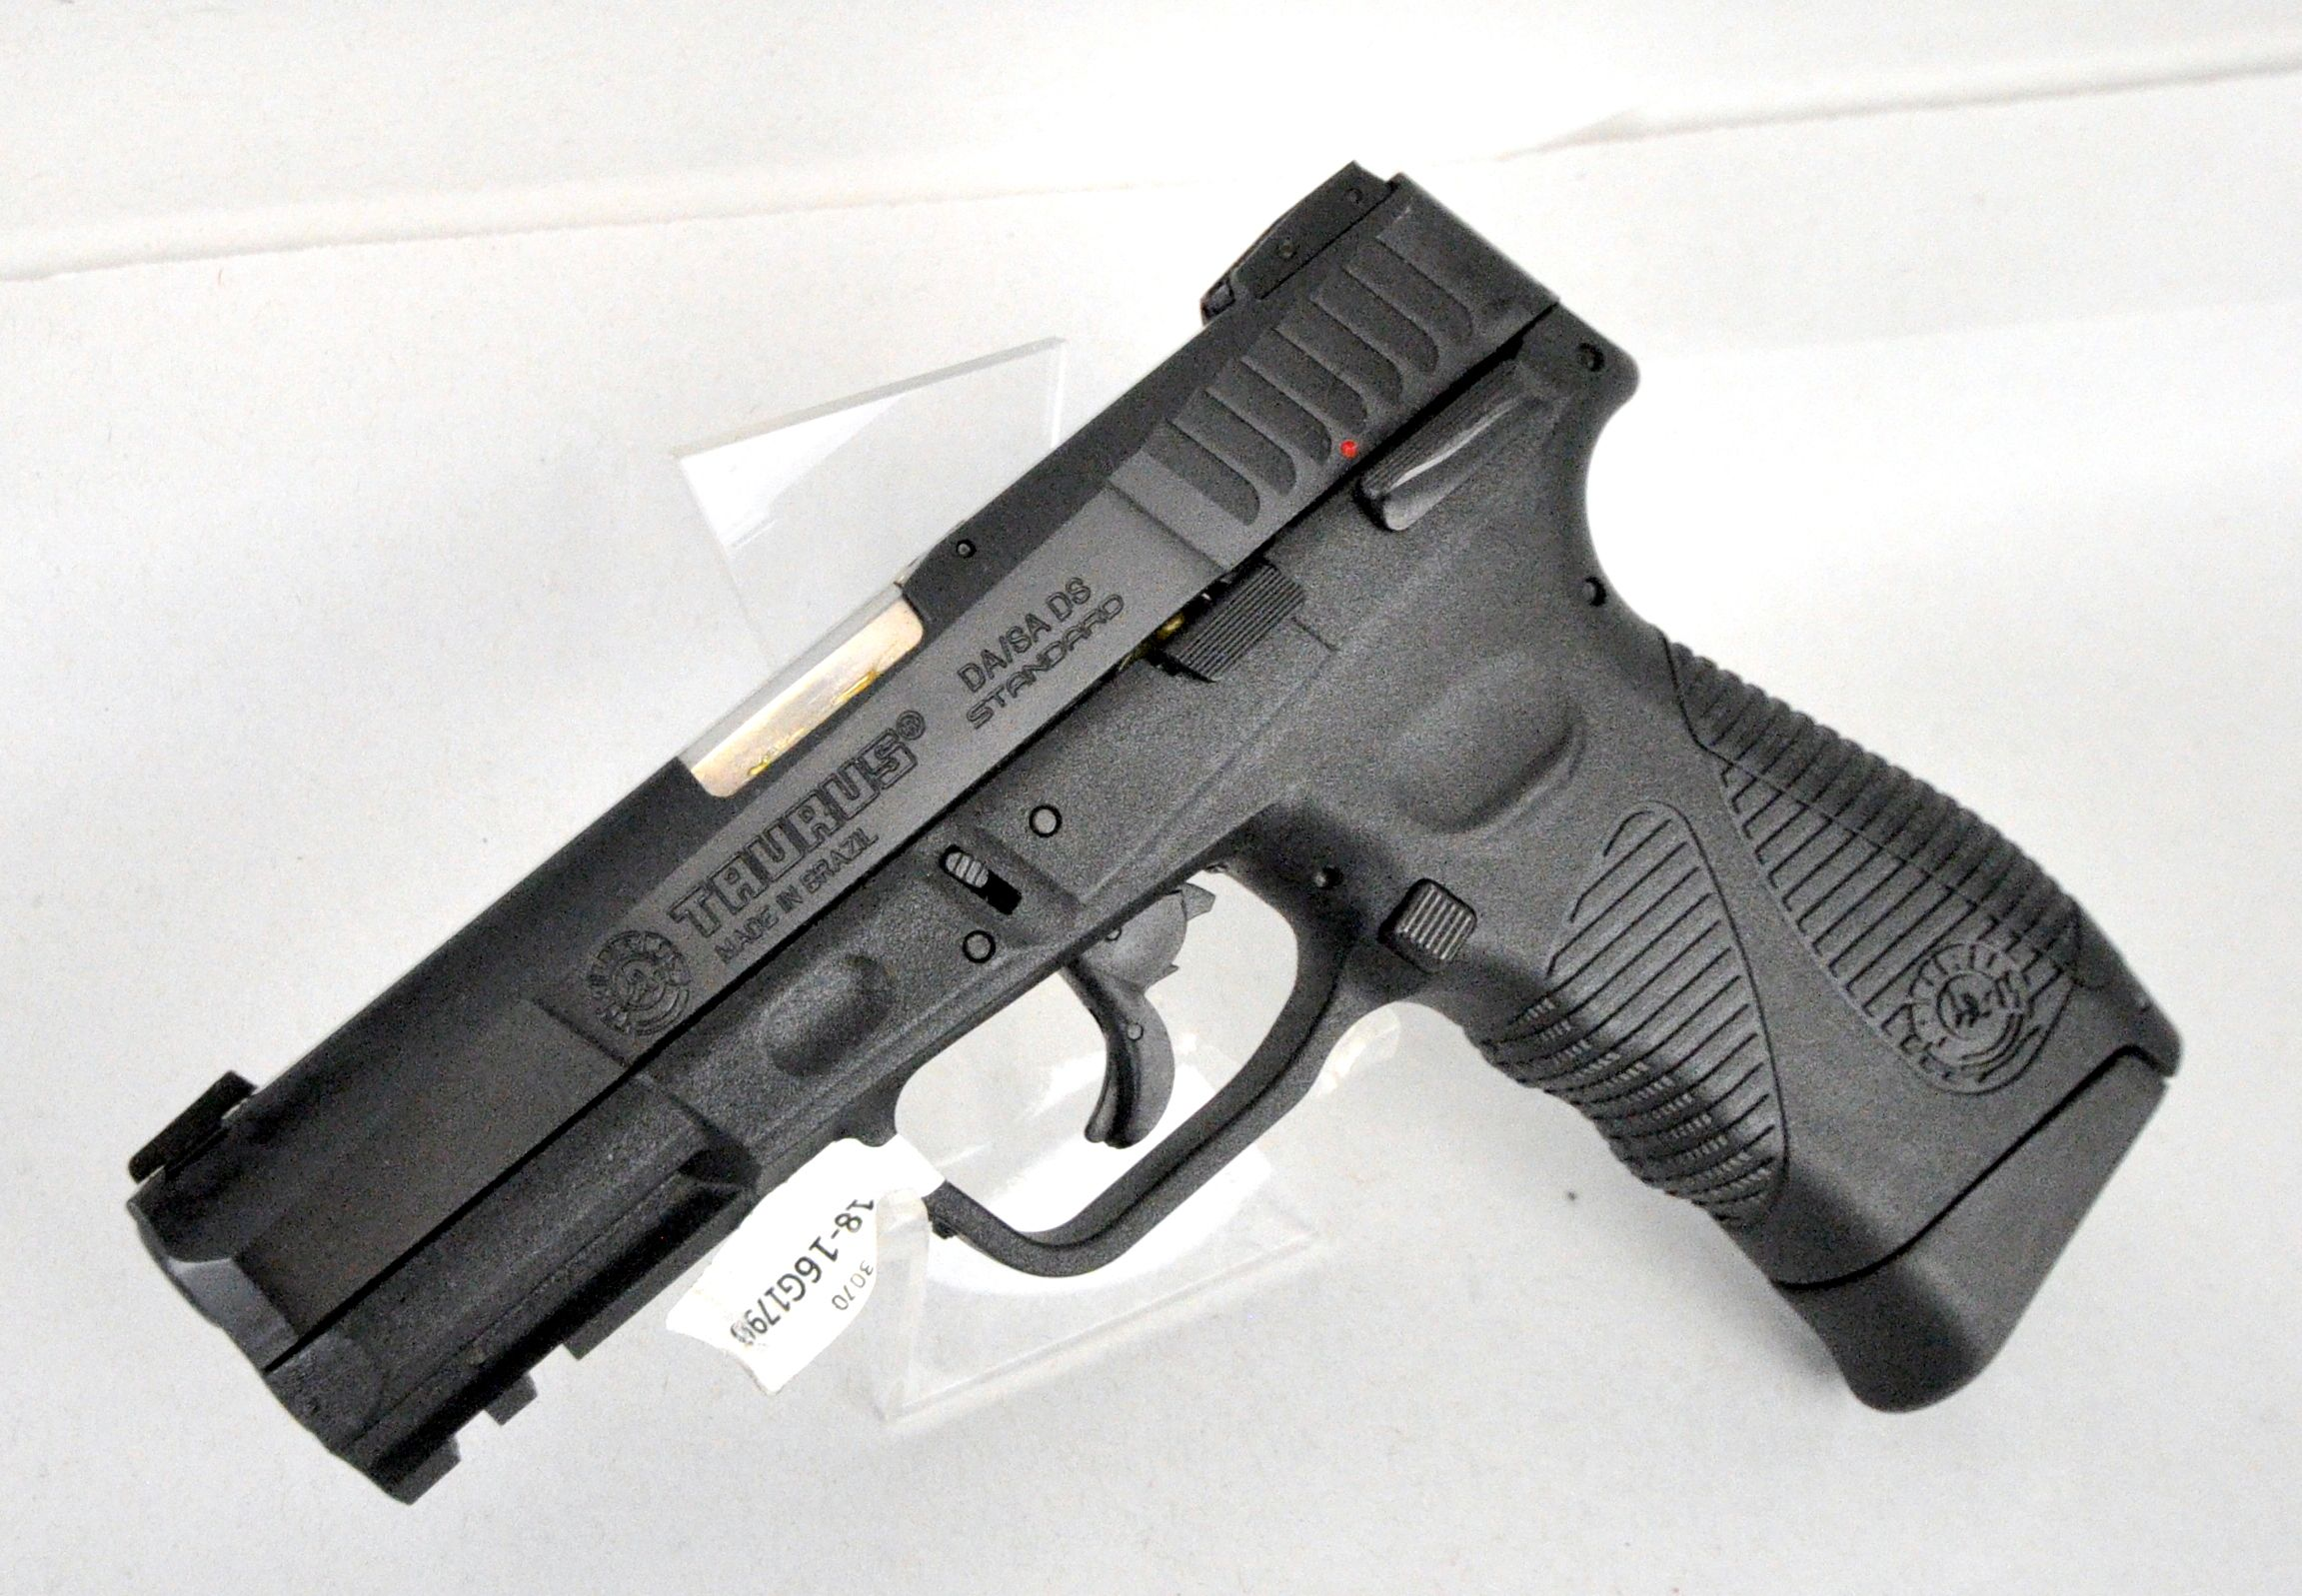 "Taurus PT24/7 G2 Standard 9mm. 1-247091G2-17. A full-sized SA/DA pistol. It offers the best of Taurus, combining features from the Taurus 800 Series, 24/7 Series and 24/7 OSS. Features include ""Strike Two"" capability for incredible reliability, contoured thumb rests, a new trigger safety and balanced spring pressure for extraordinarily fast shooting. 3-dot sights w/ adj rear. Blued slide with polymer grip. 17+1 capacity of 9mm. 4.2"" barrel. 28 oz. [New in Box] $449.99"